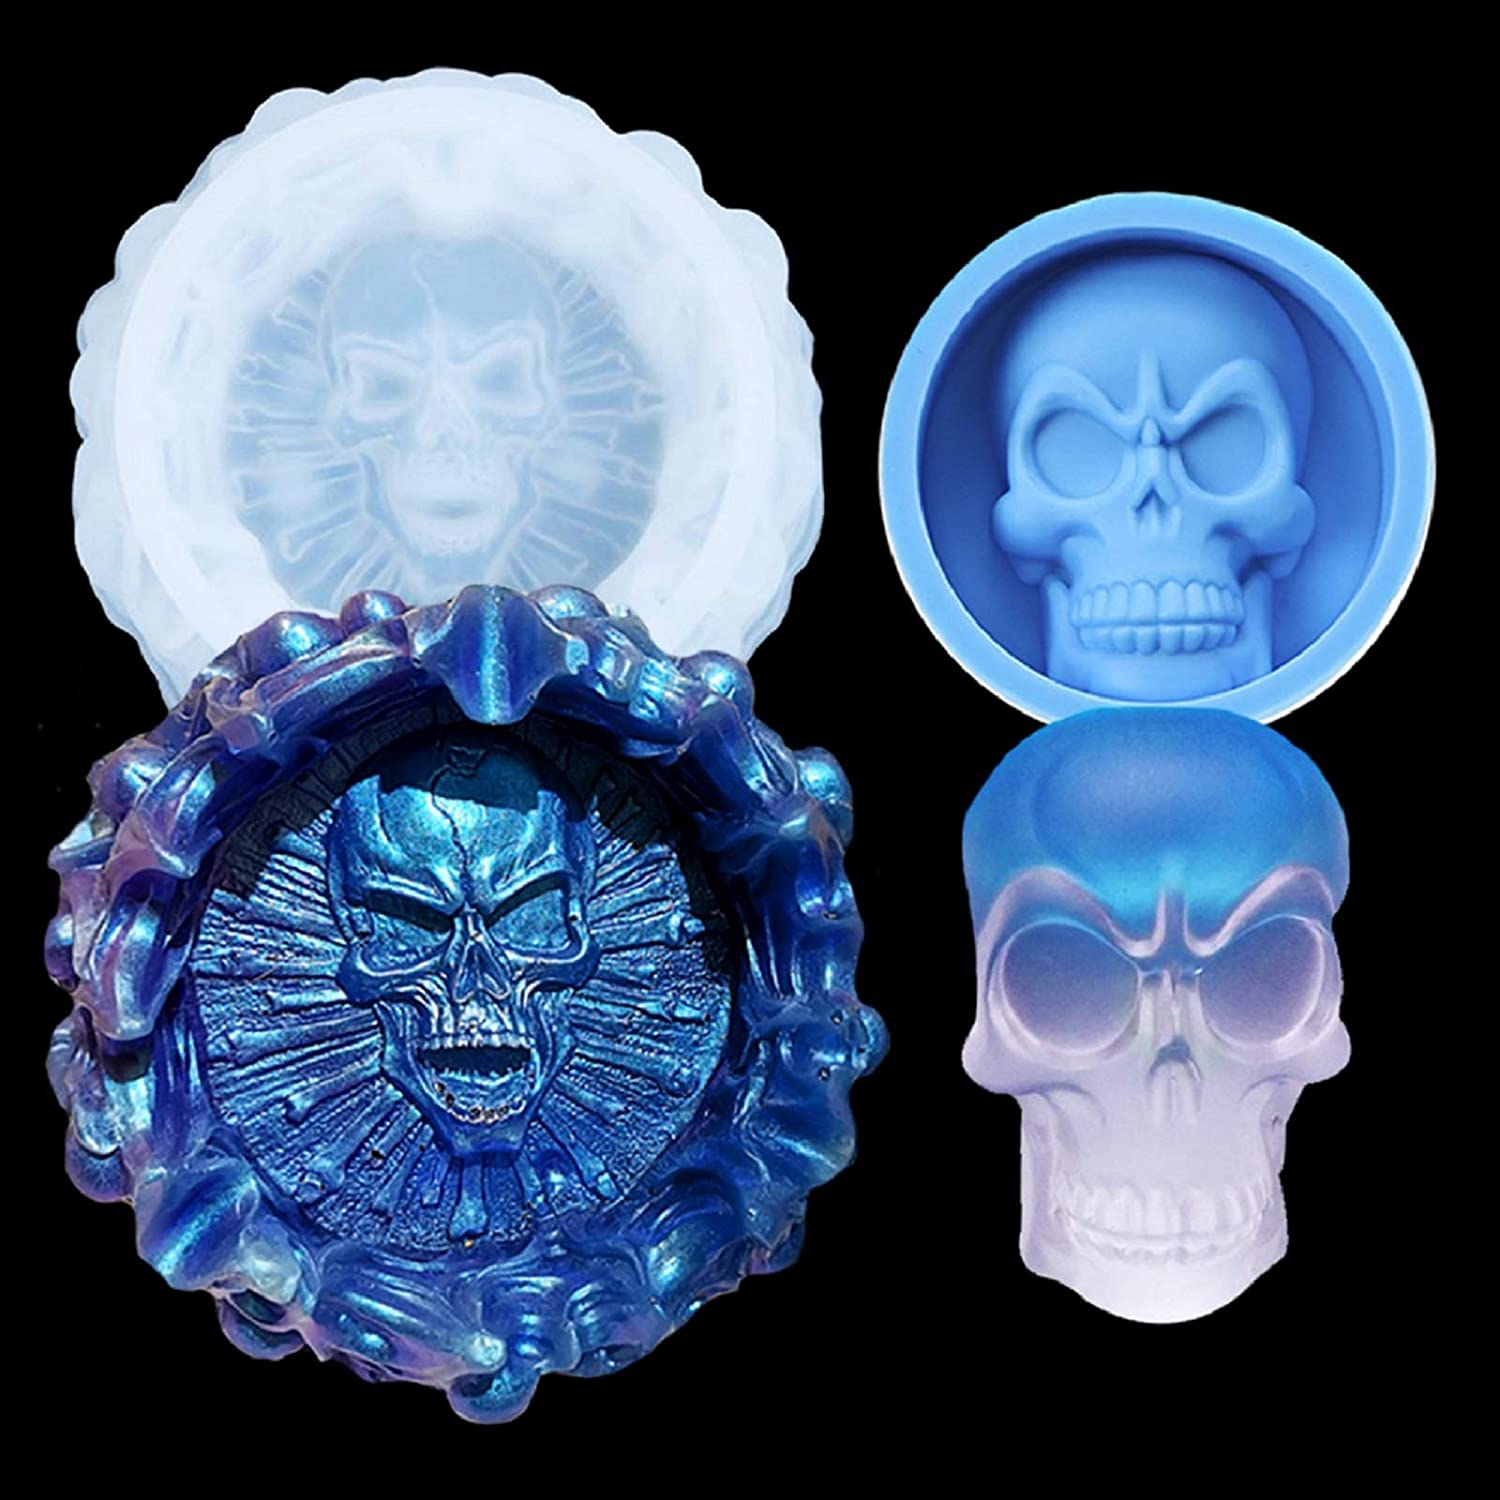 3D Skull Resin Silicone Mold for 2018 Halloween Cake Decorating